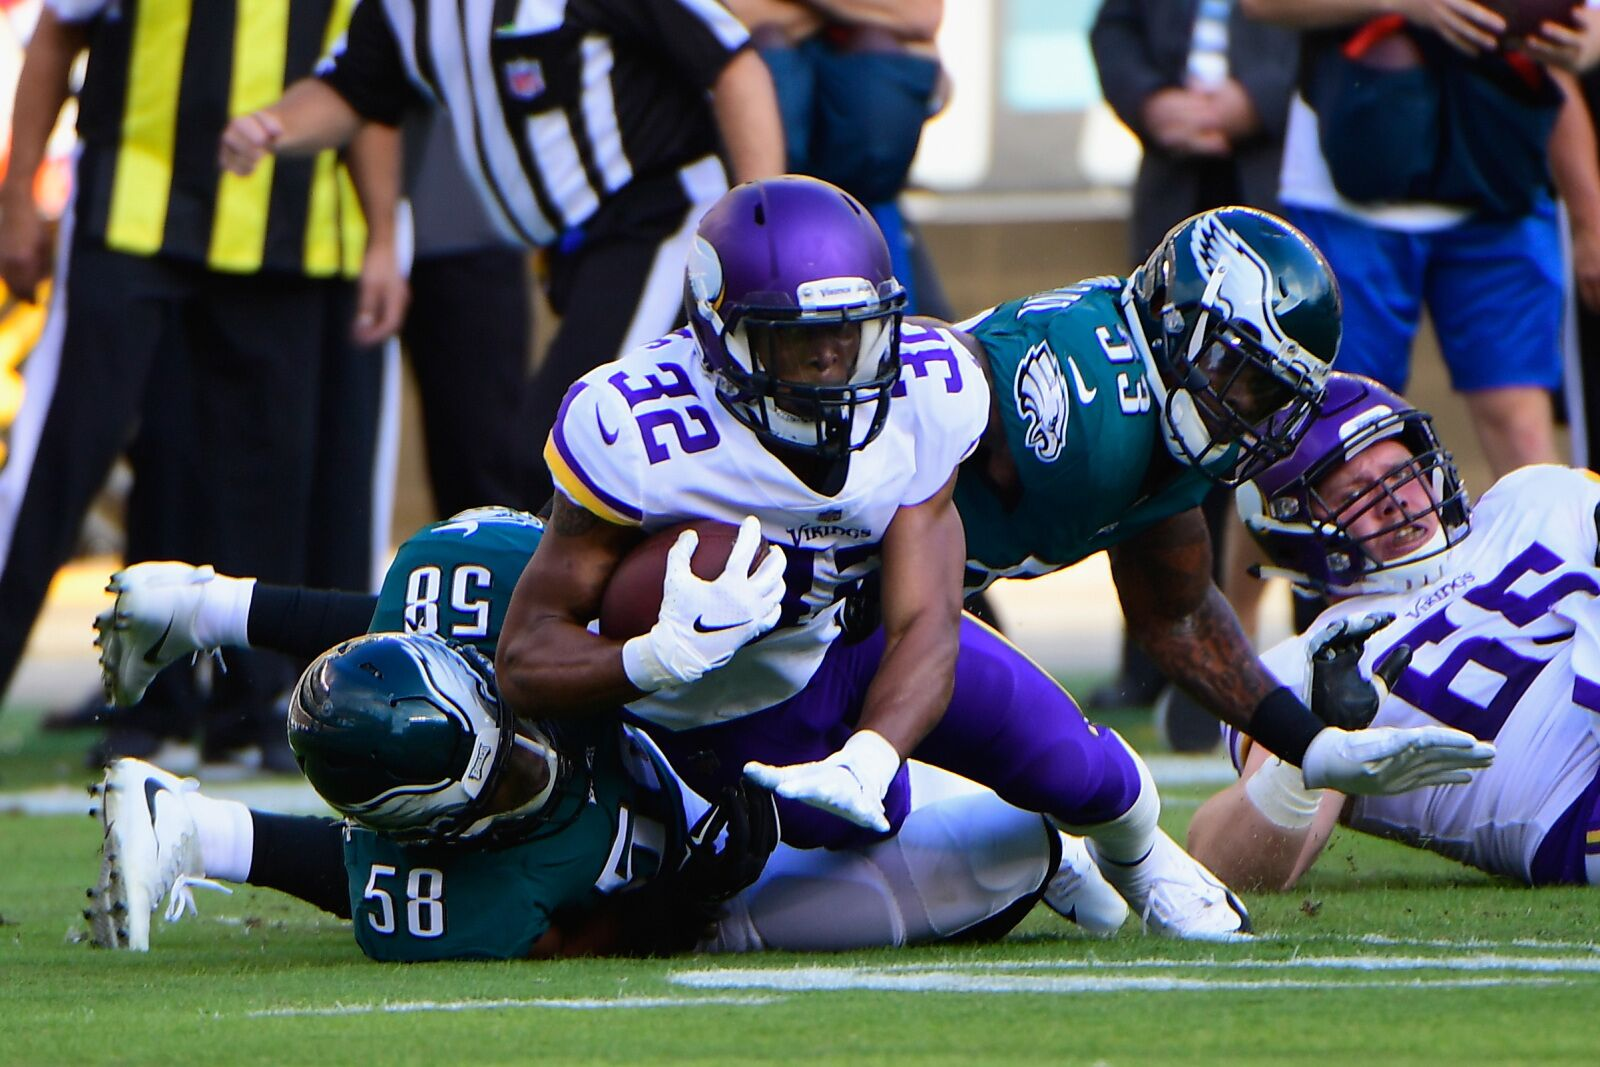 Vikings running back suspended by the NFL for substance abuse